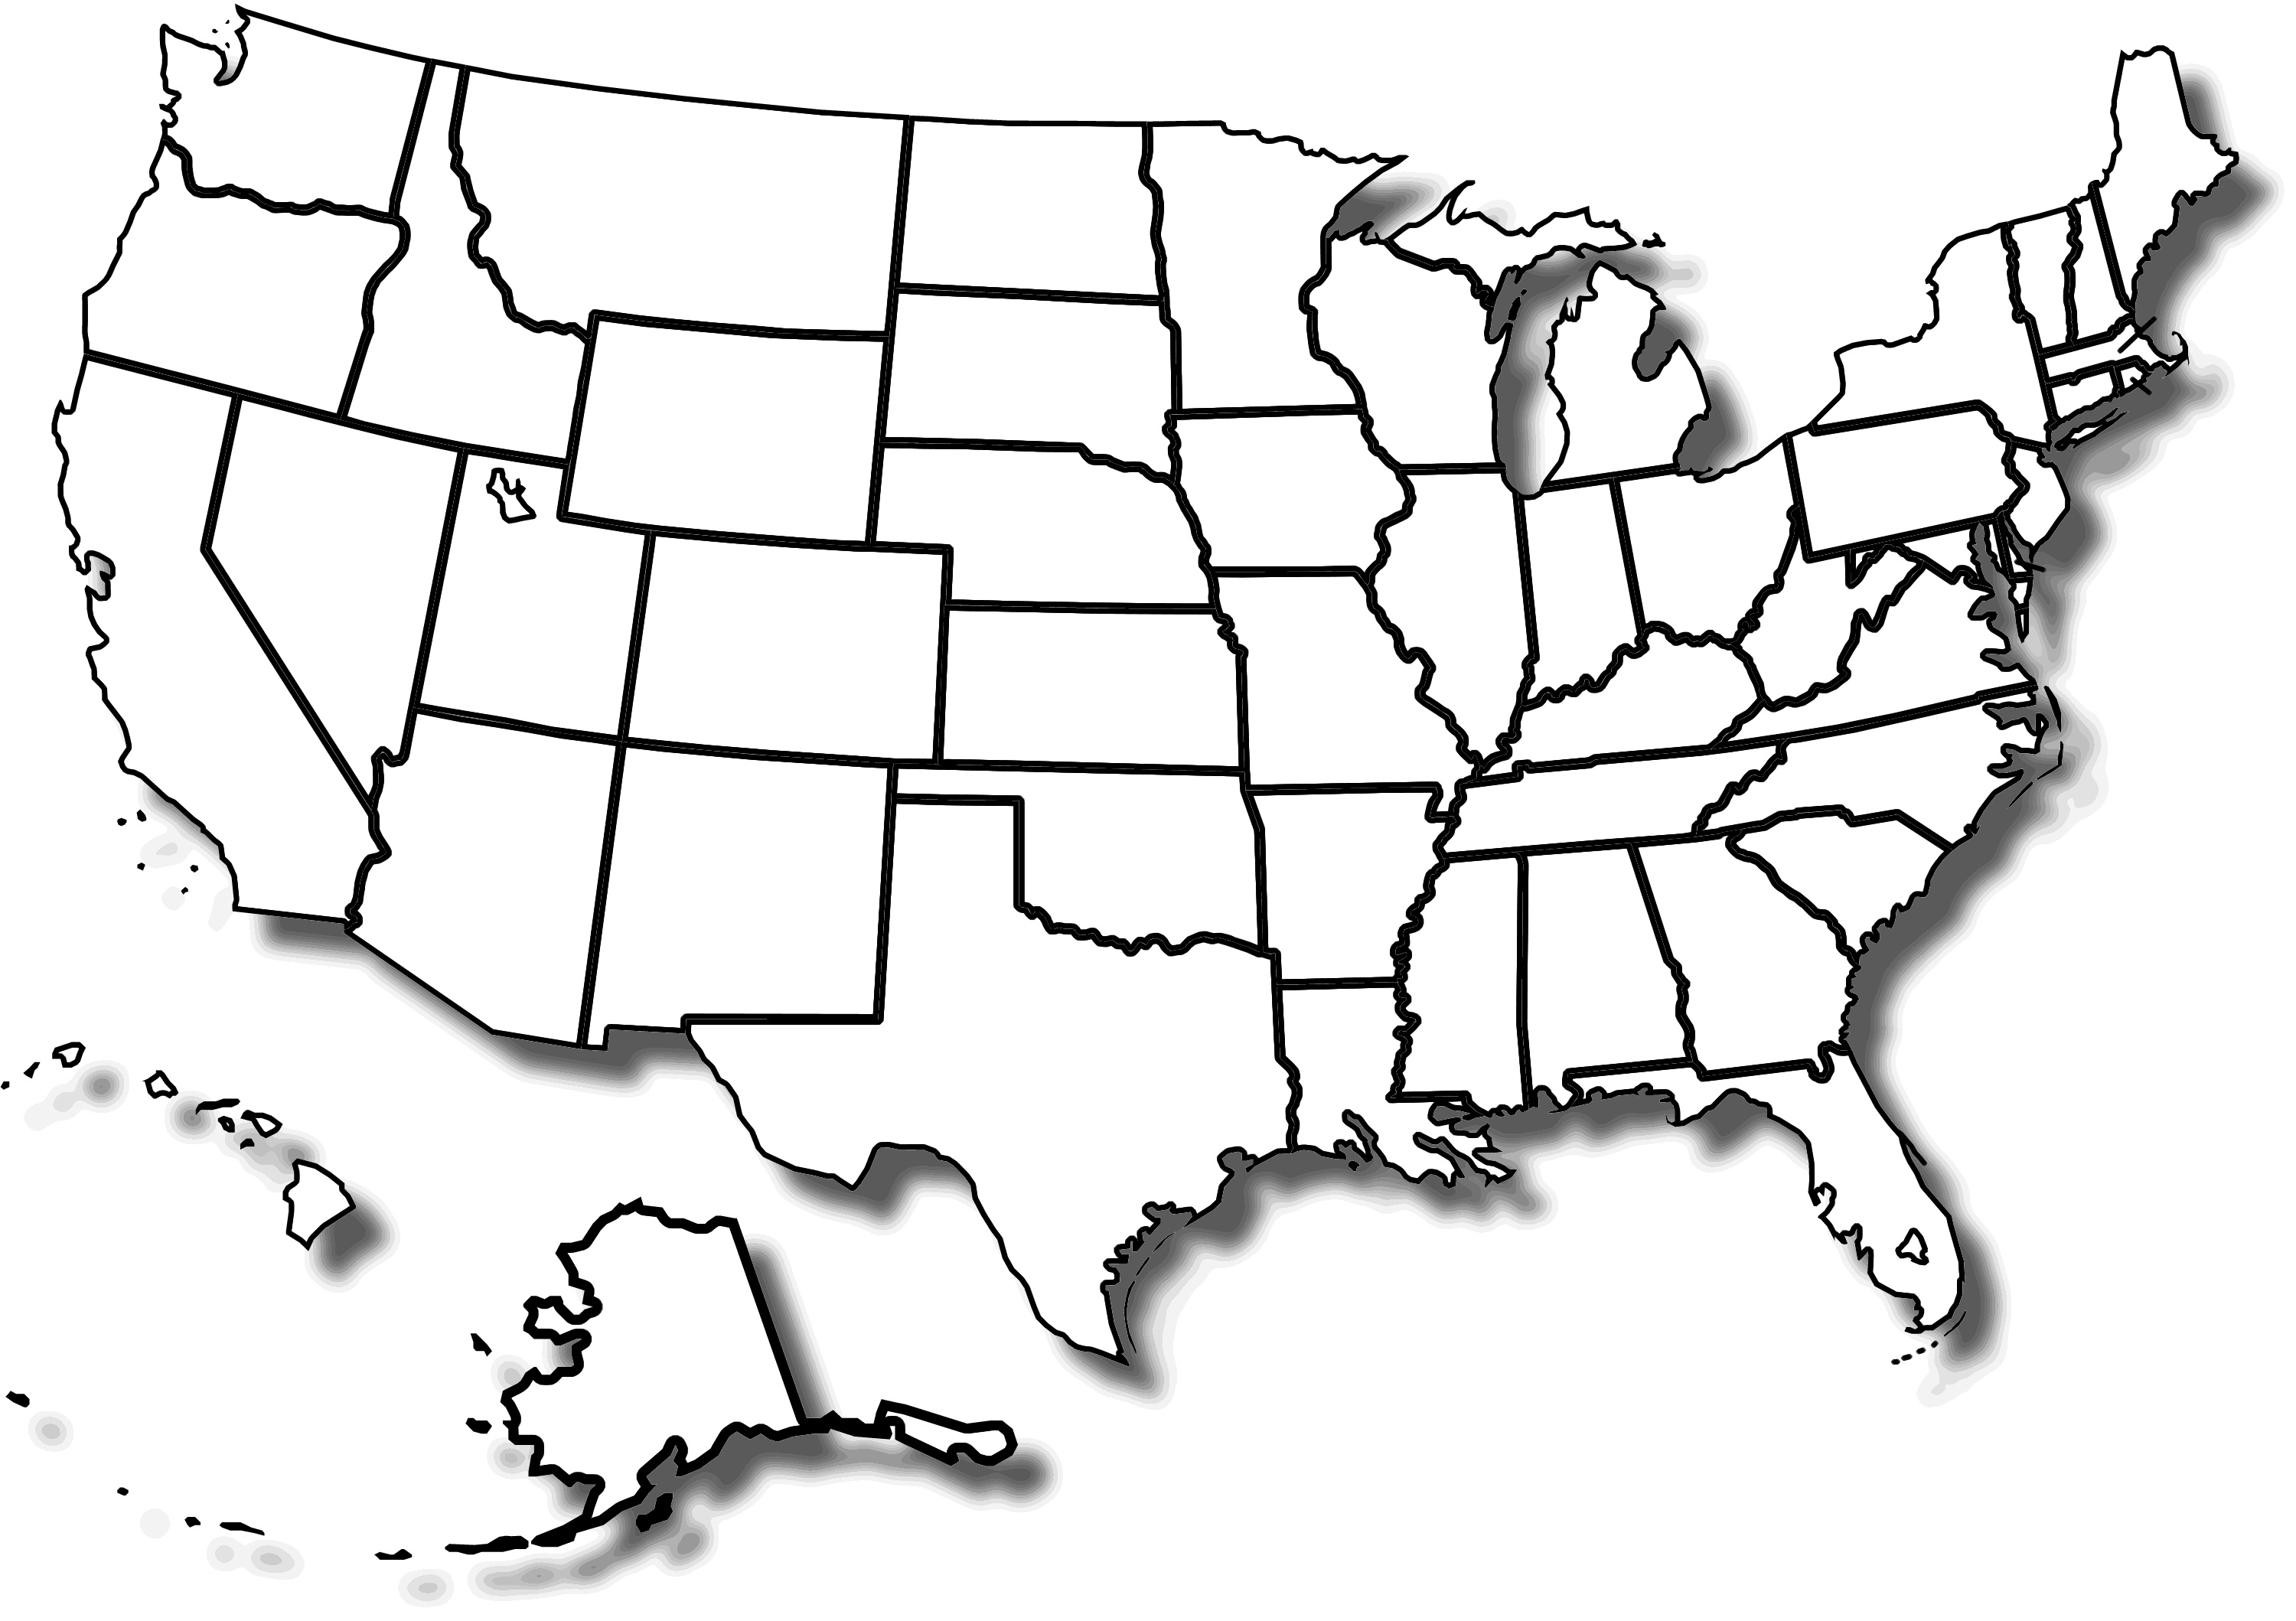 Blank And White Usa Map Blank And White Usa Map Blank Black And ...